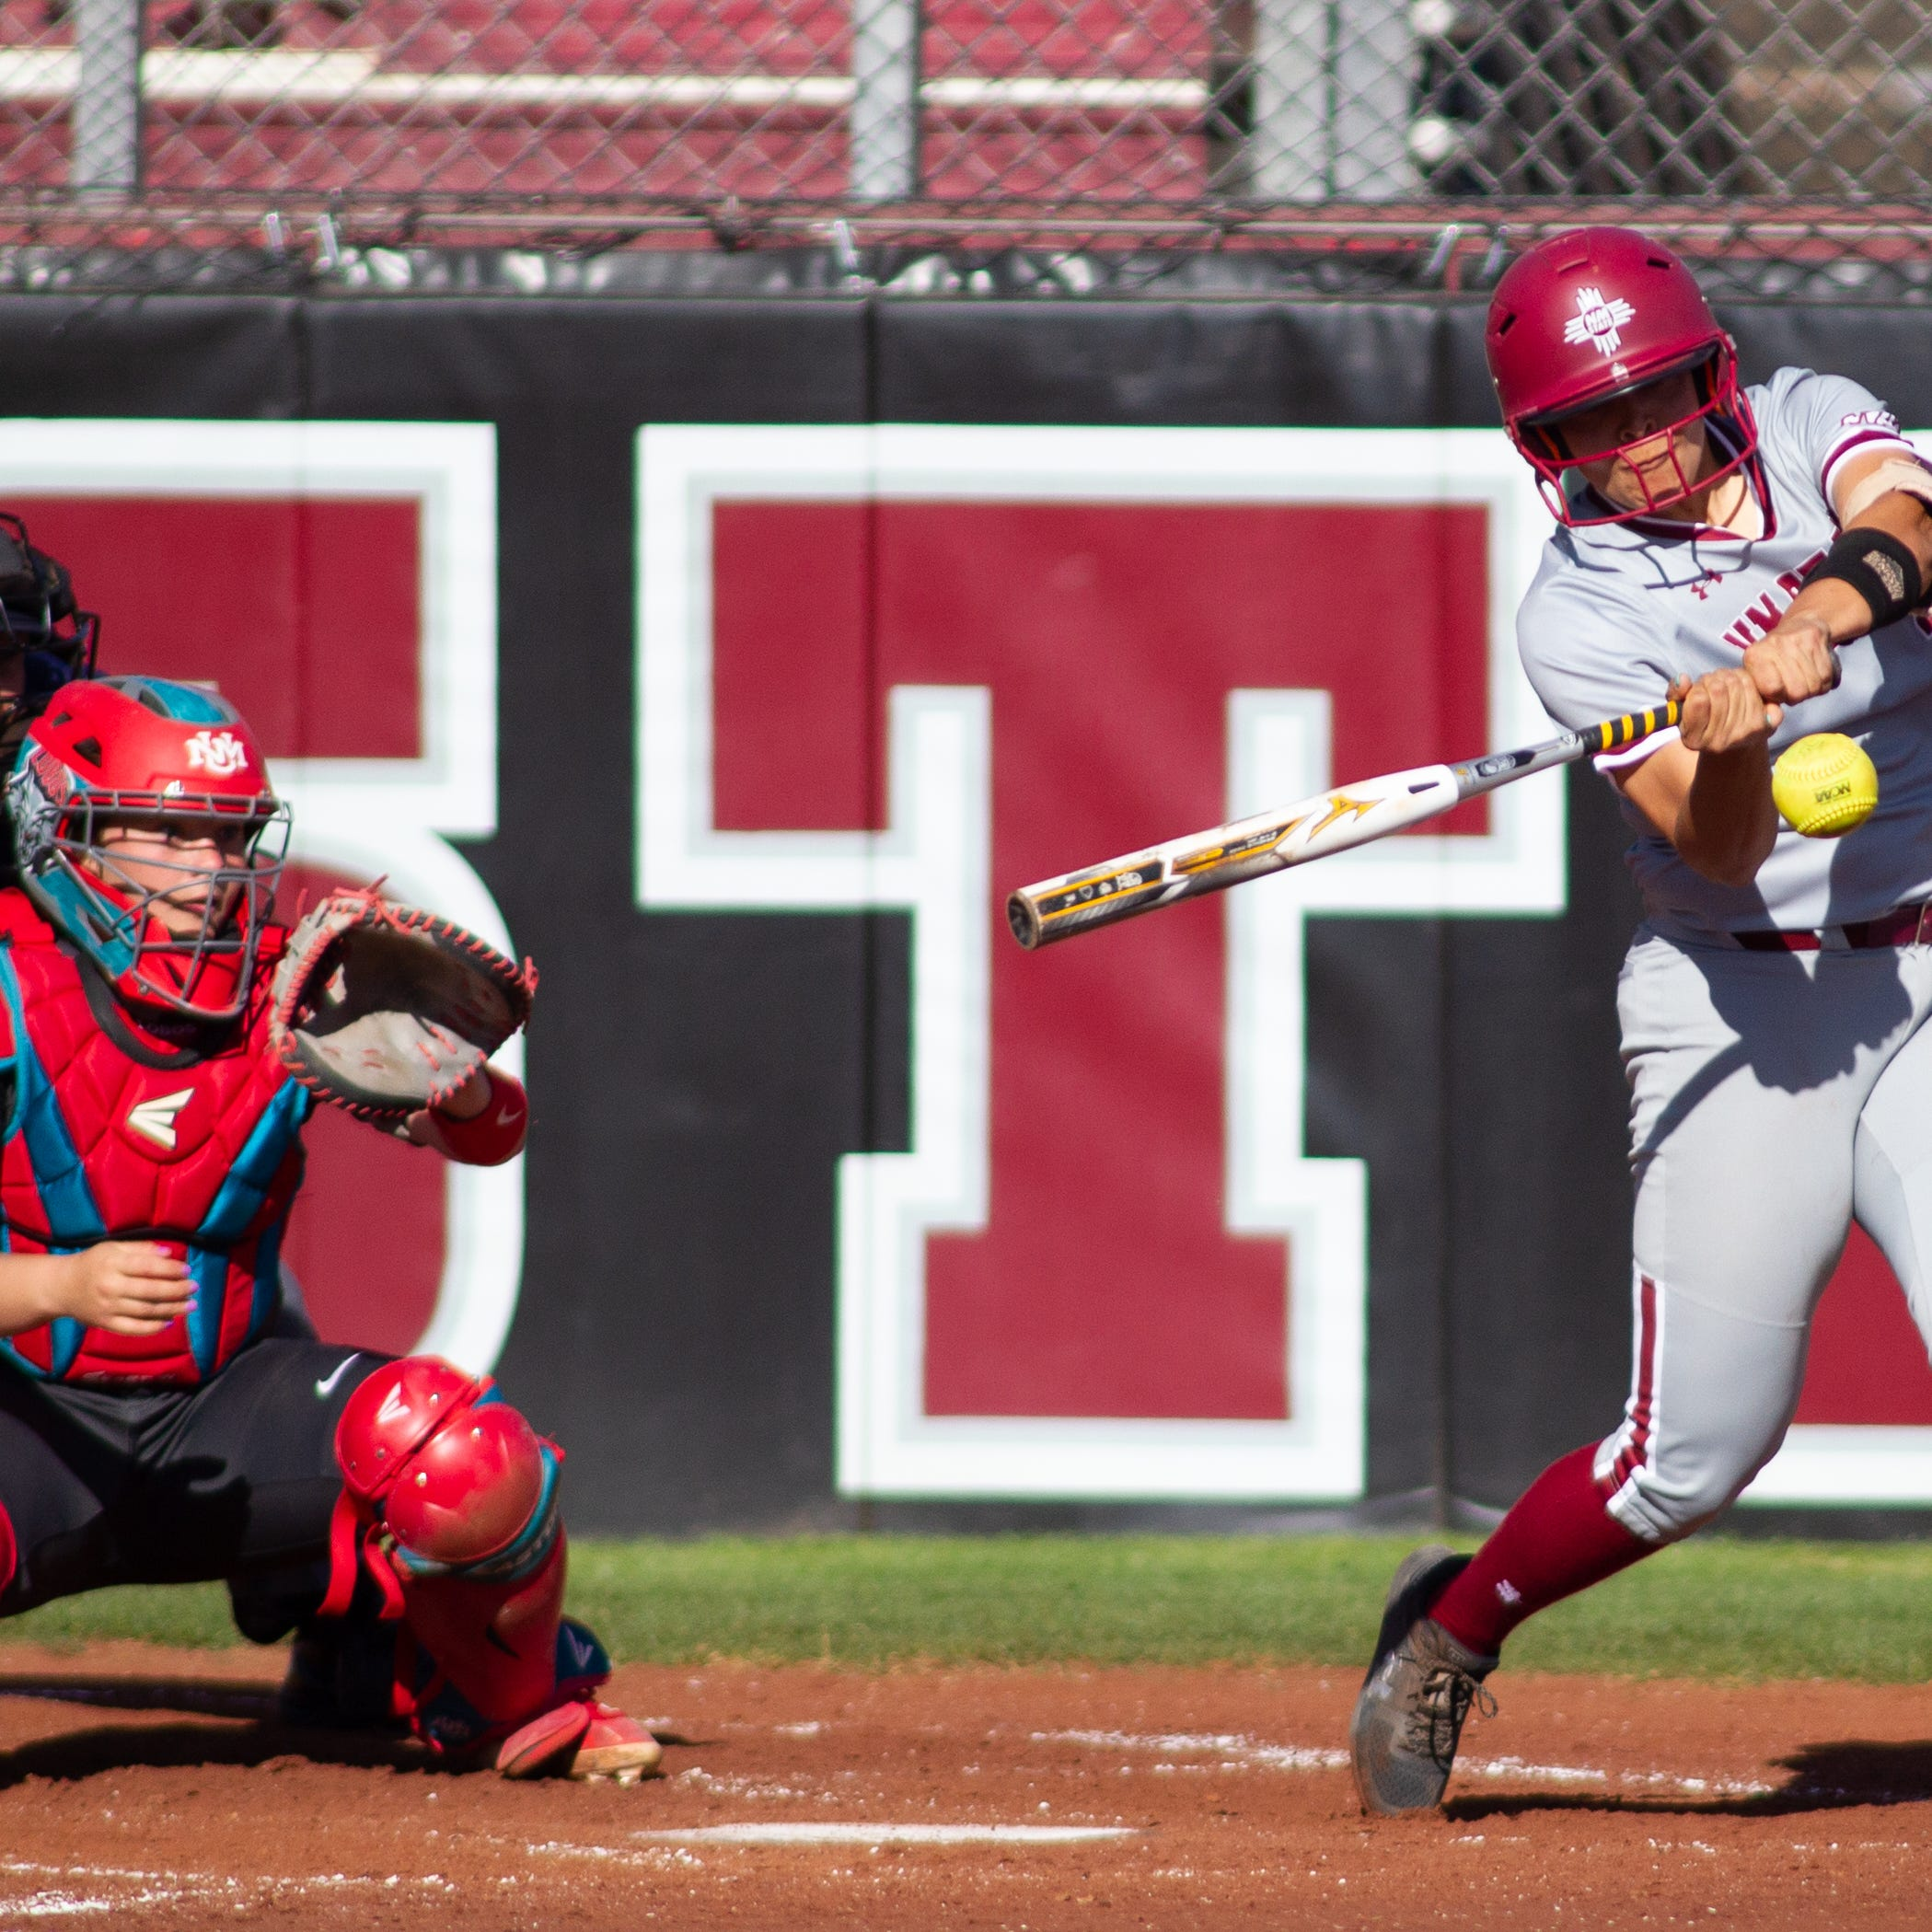 New Mexico State softball sweeps rival New Mexico in doubleheader